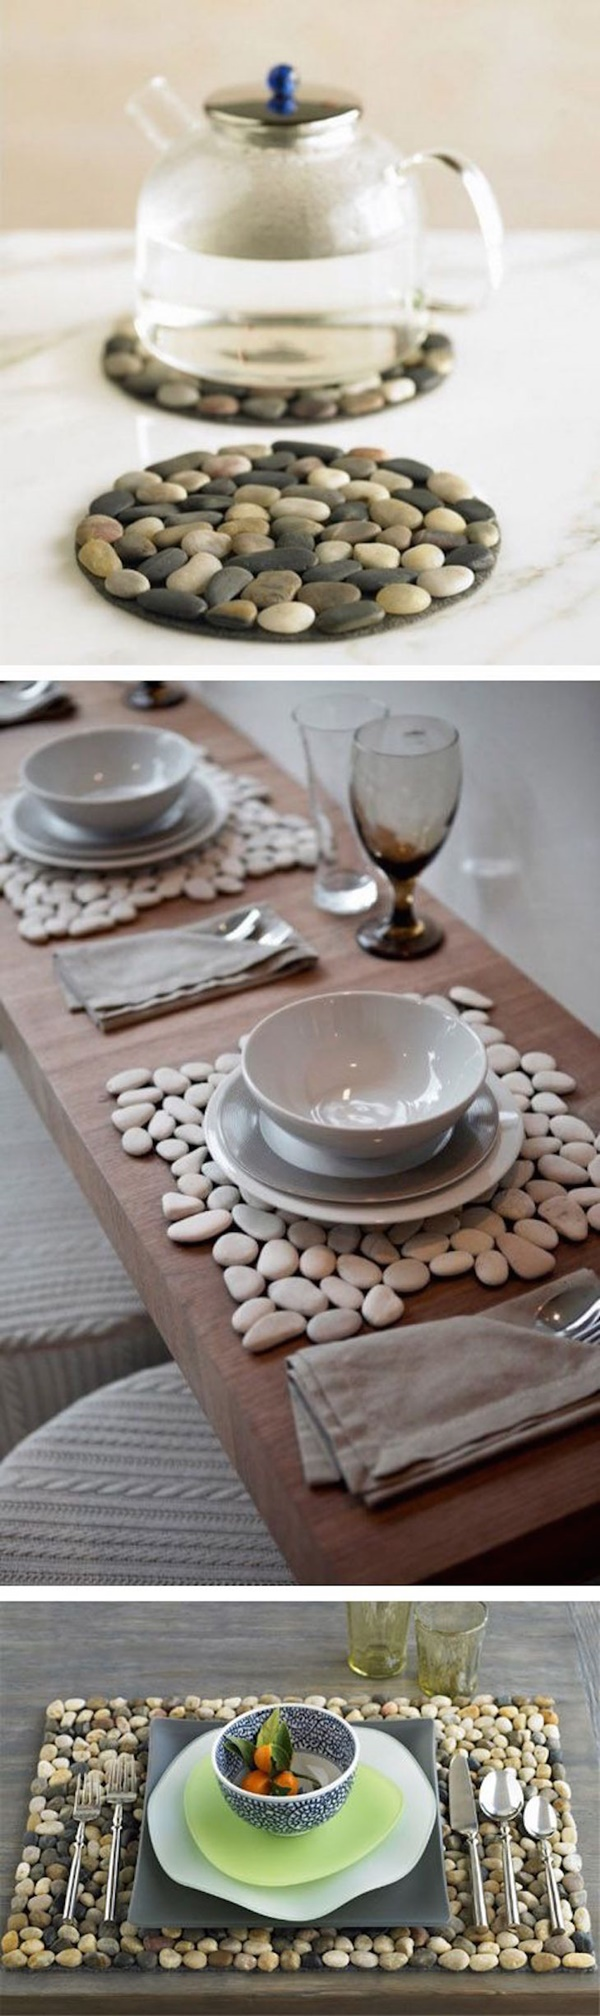 10 Creative DIY Home Decor Ideas With Pebbles And River Rocks on Rock Decorating Ideas  id=40982